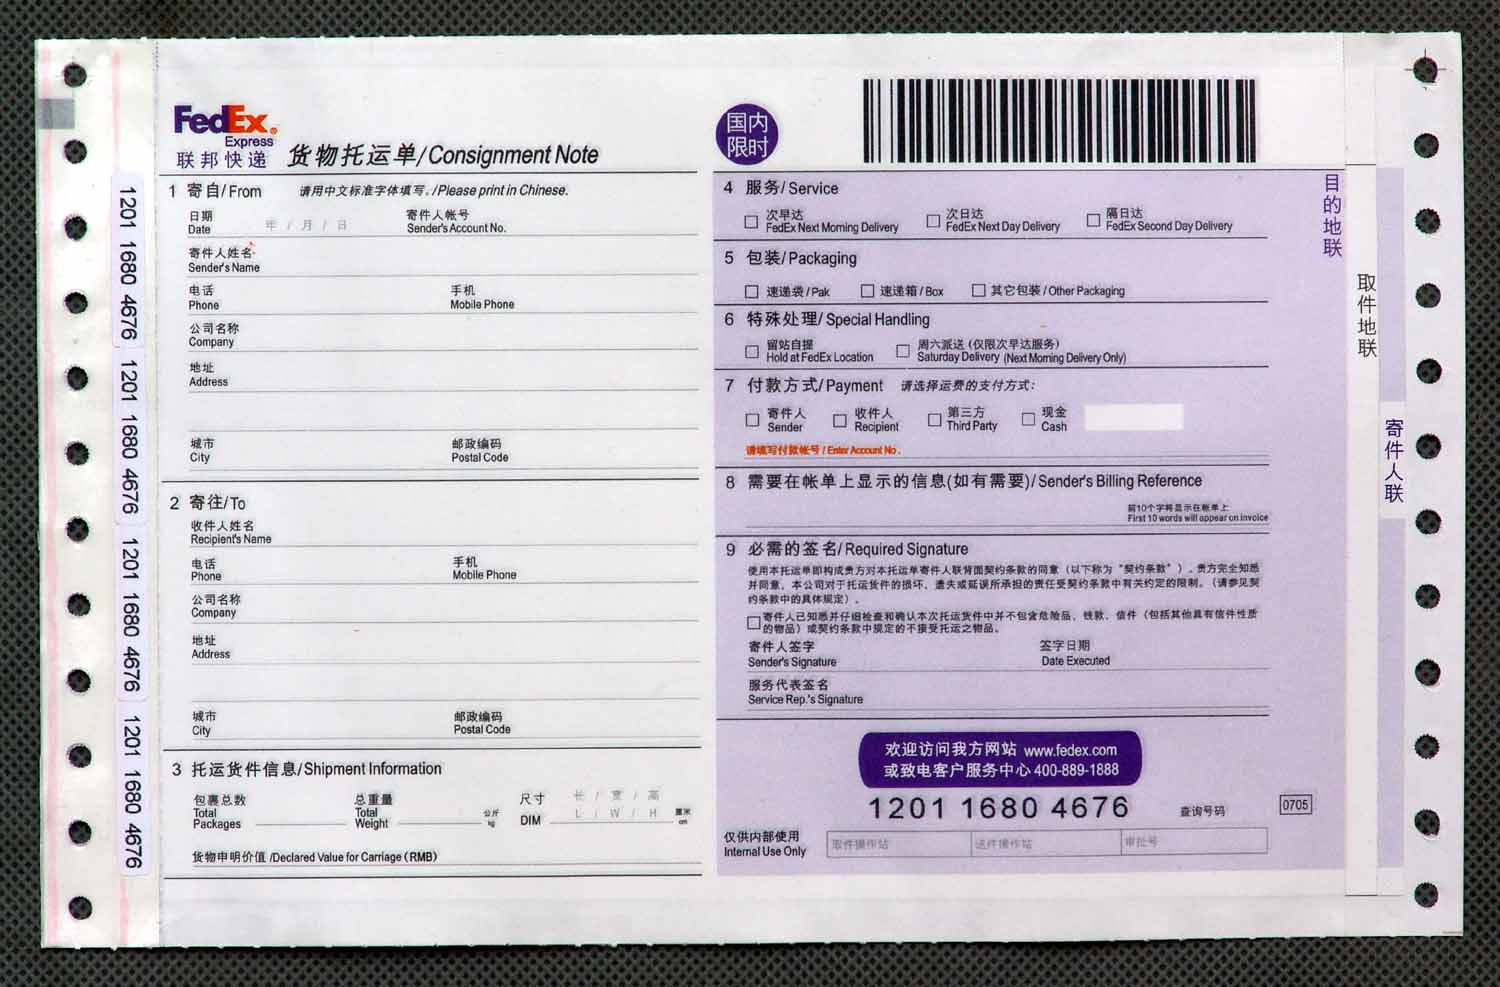 Fedex Expanded Service International Air Waybill Form Download